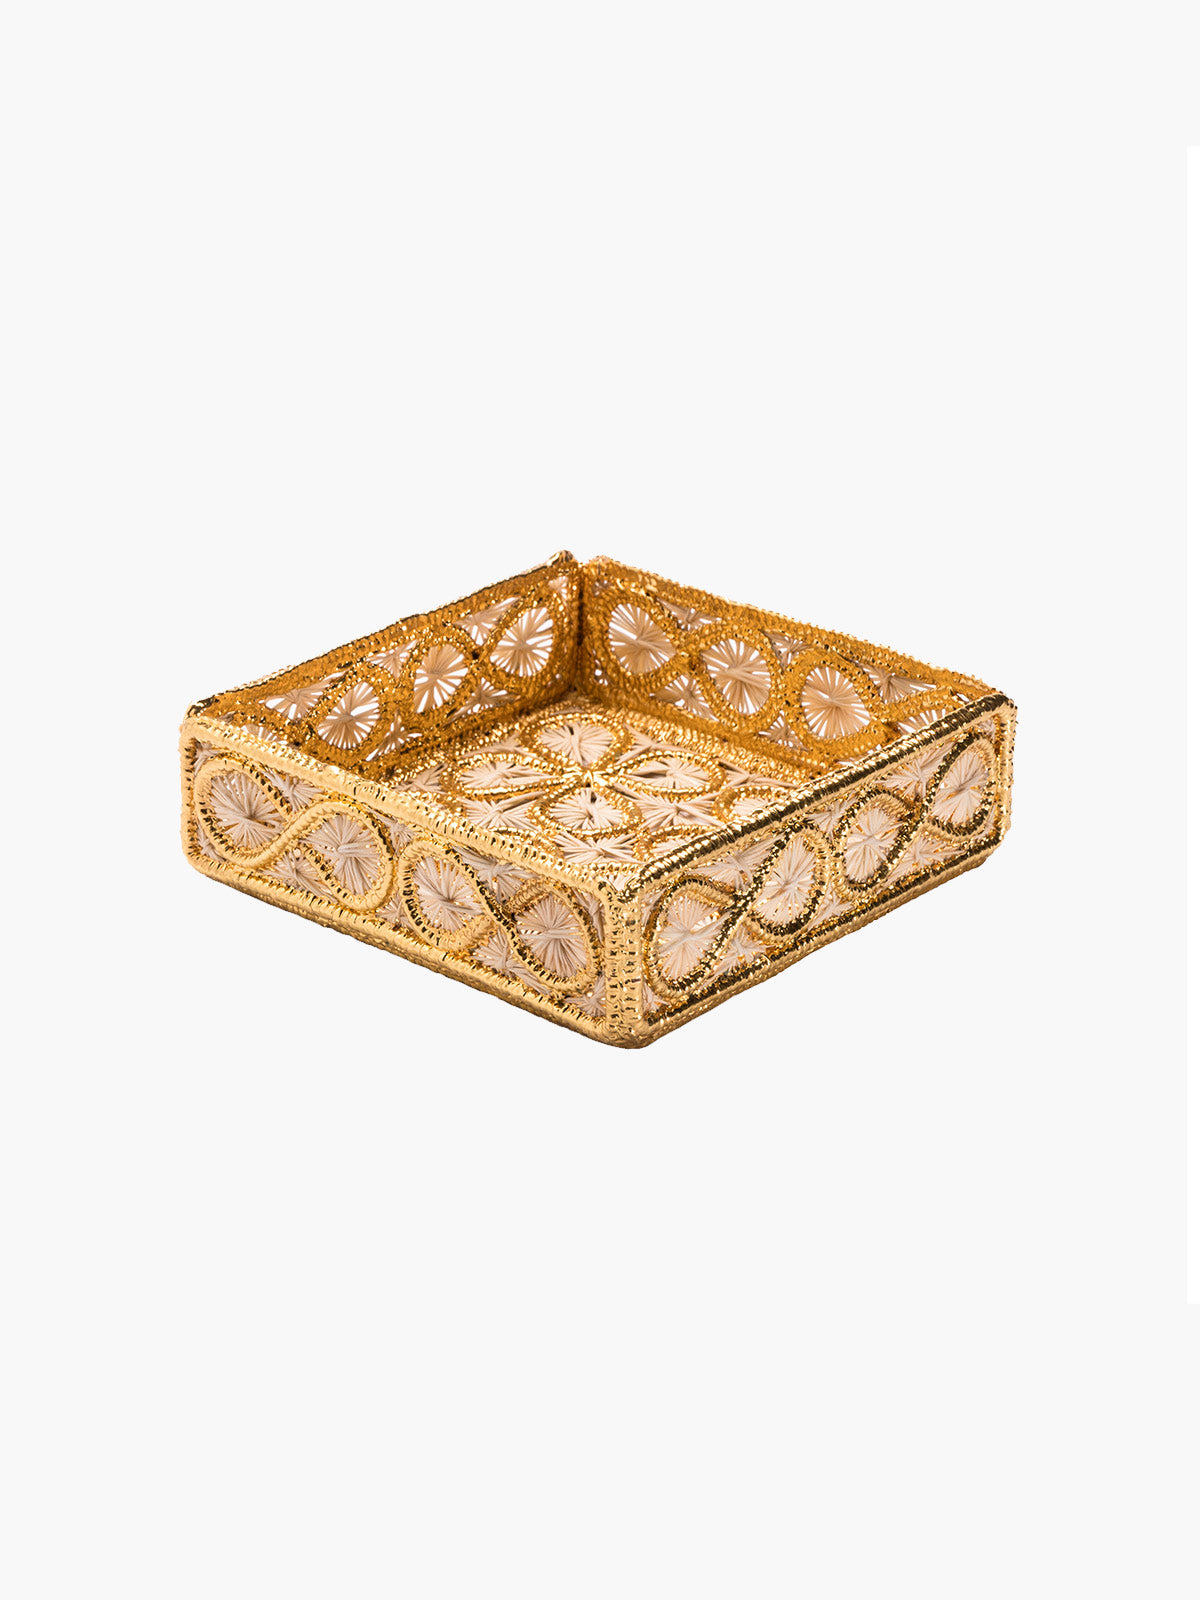 Floral Small Square Tray Floral Small Square Tray